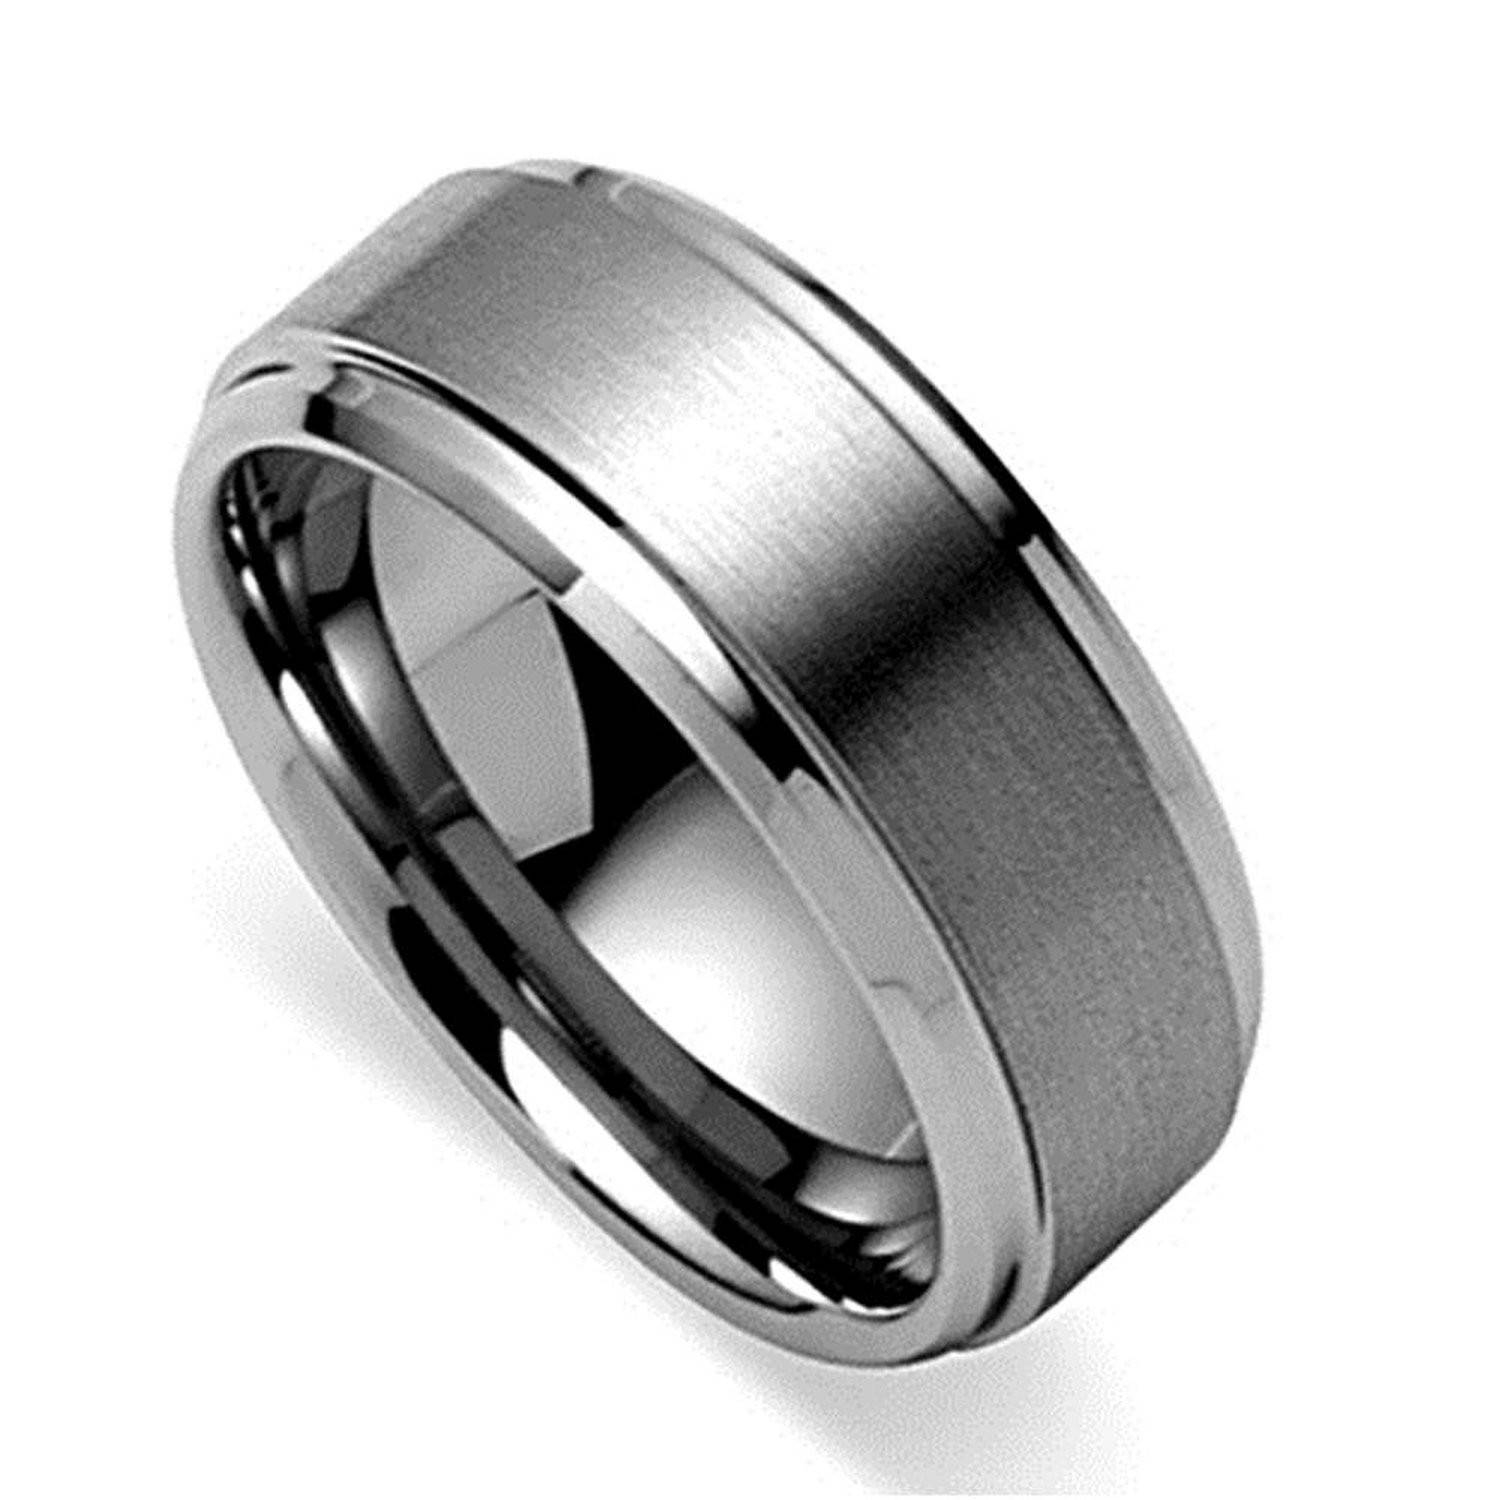 Batman Wedding Rings For Men Best Of Tiffany Wedding Bands Men With Tiffany Wedding Bands For Men (View 14 of 15)